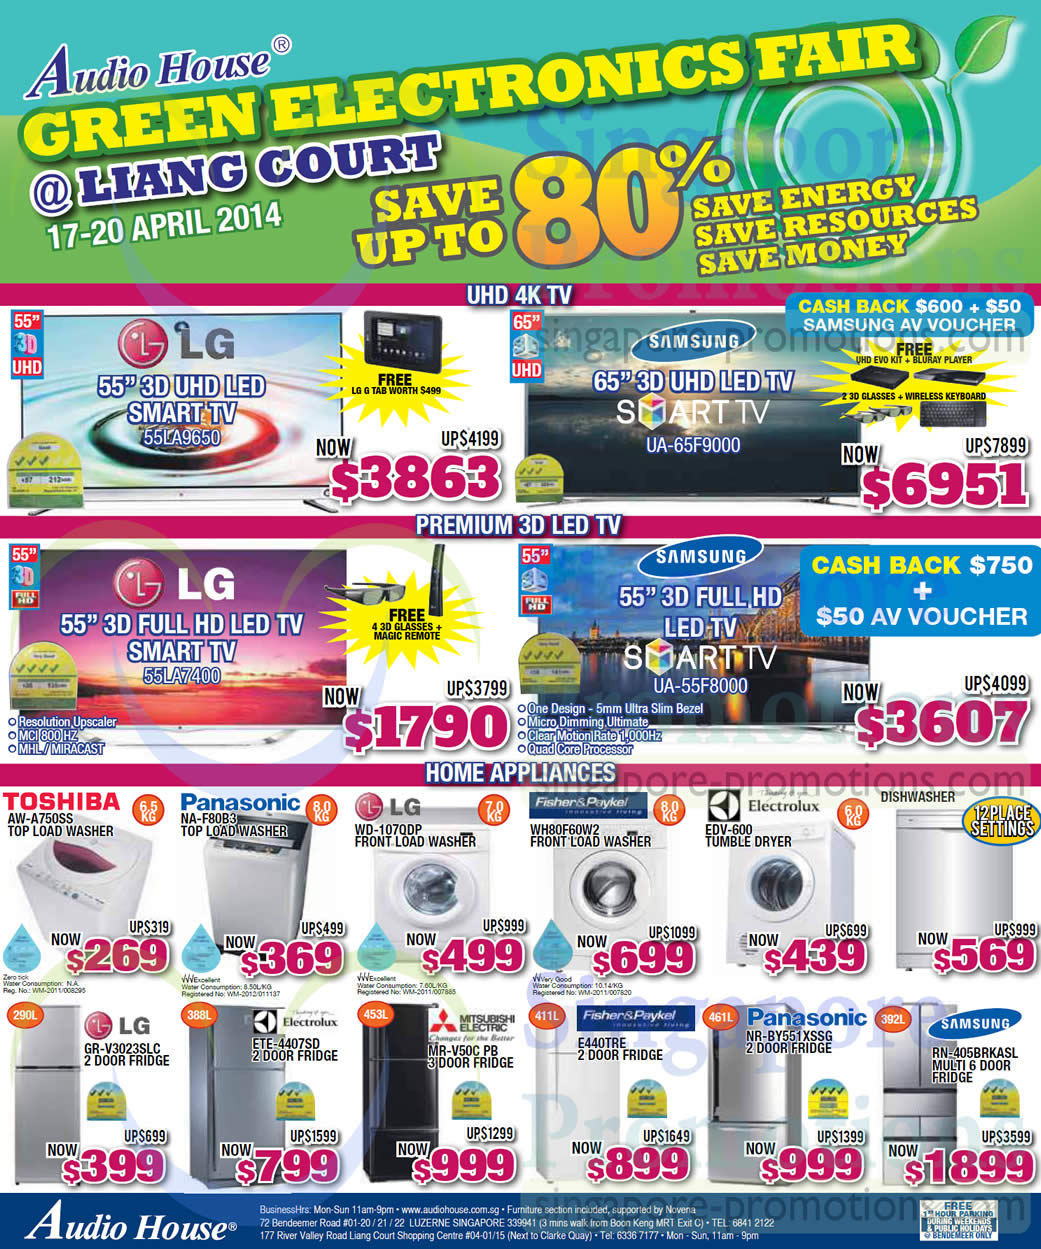 LG 55LA9650 TV, Samsung UA65F9000 TV, LG 55LA7400 TV, Samsung UA55F8000 TV, Toshiba AW-A750SS Washer, Panasonic NAF80B3 Washer, LG WD-107QDP Washer, Fisher&Paykel WH80F60W2 Washer, Electrolux EDV-600 Dryer, LG GR-V3023SLC Fridge, Electrolux ETE-4407SD Fridge, Mitsubishi Electric MR-V50C PB Fridge, Fisher&Paykel E440TRE Fridge, Panasonic NR-BY551XSSG Fridge and Samsung RN-405BRKASL Fridge